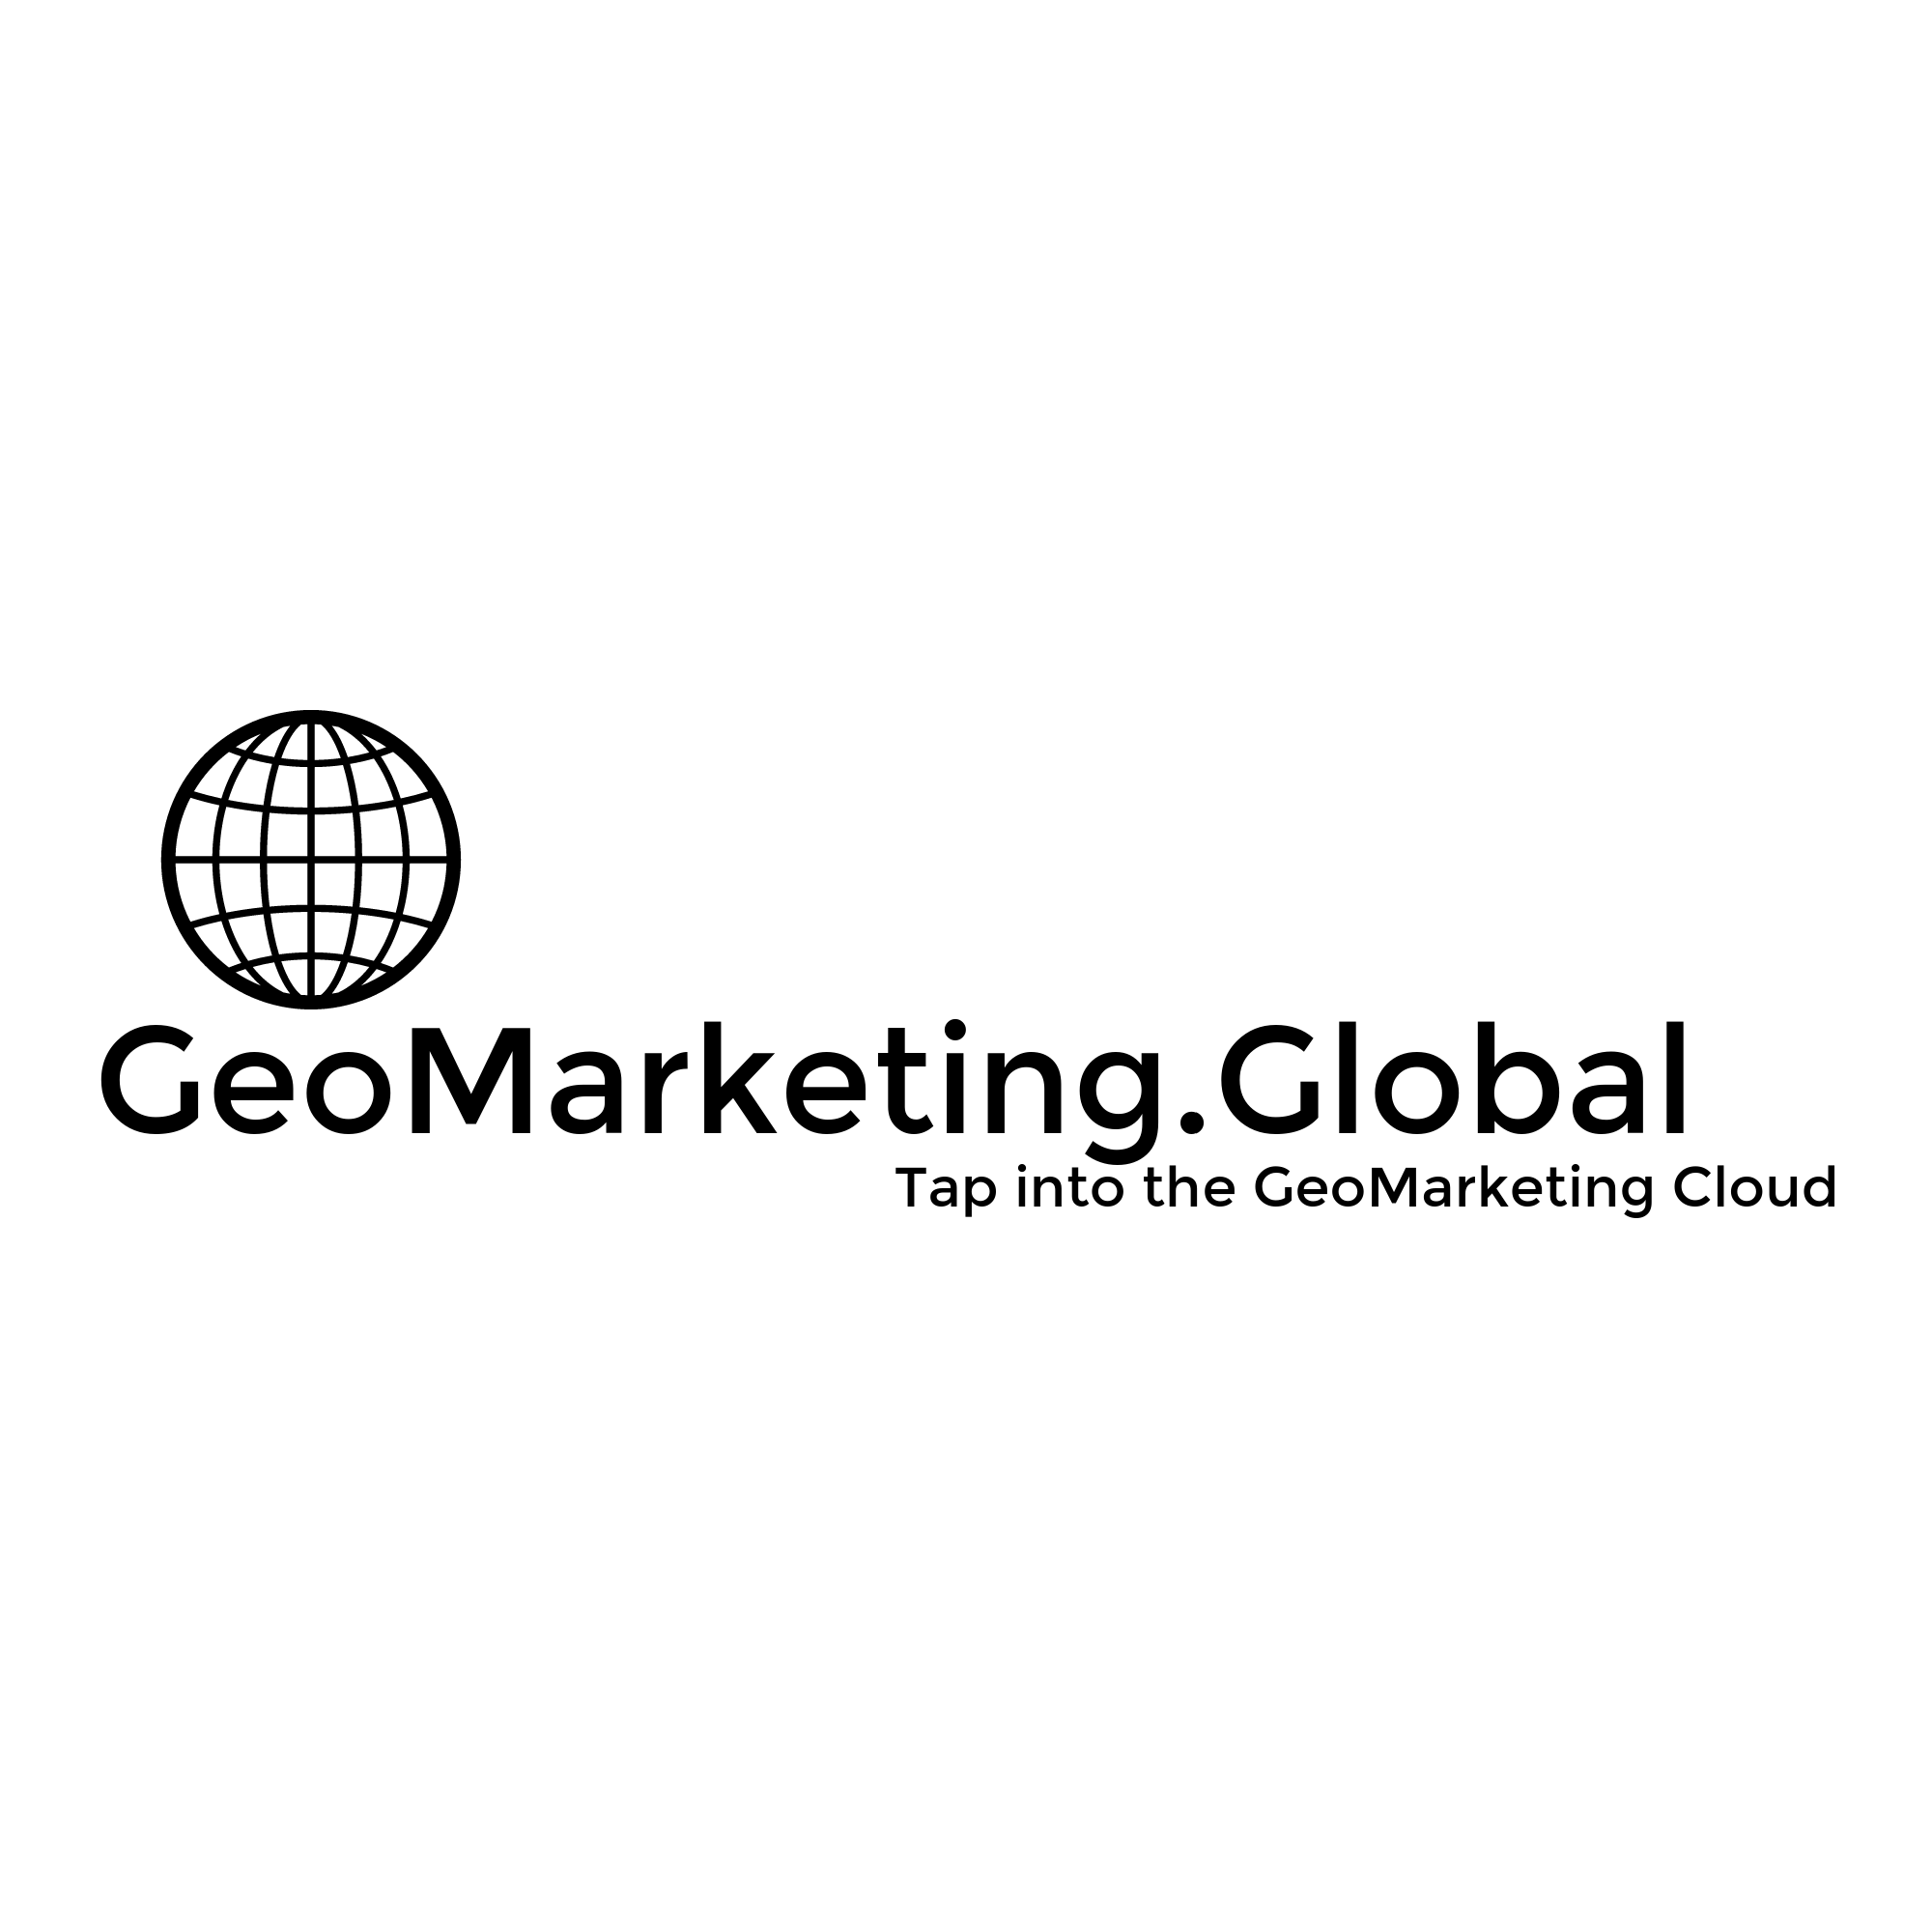 Geomarketing.Global MobileSite.Website - ad image